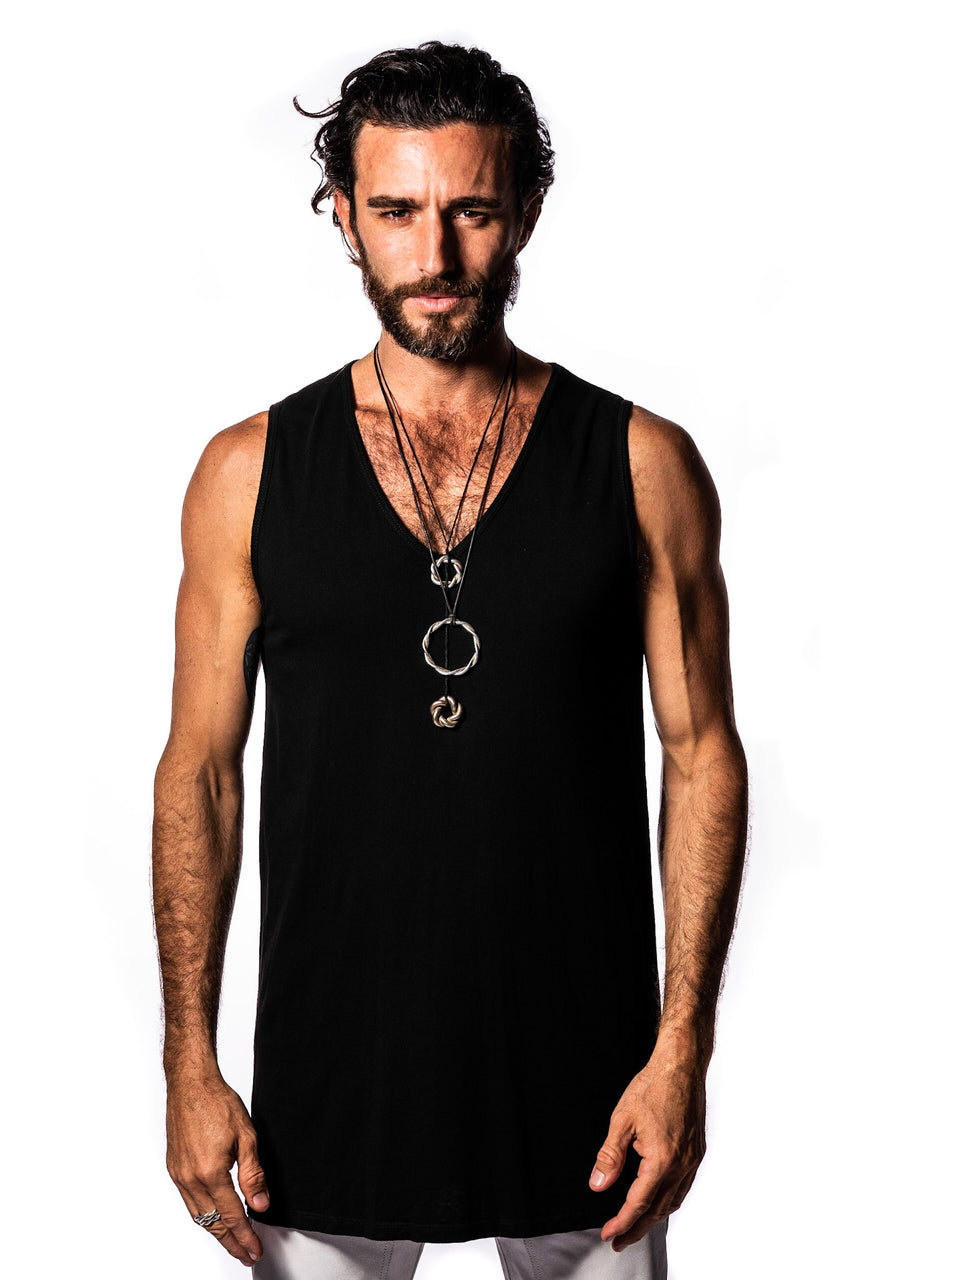 Sleeveless V-Neck Shirt - Black Magick